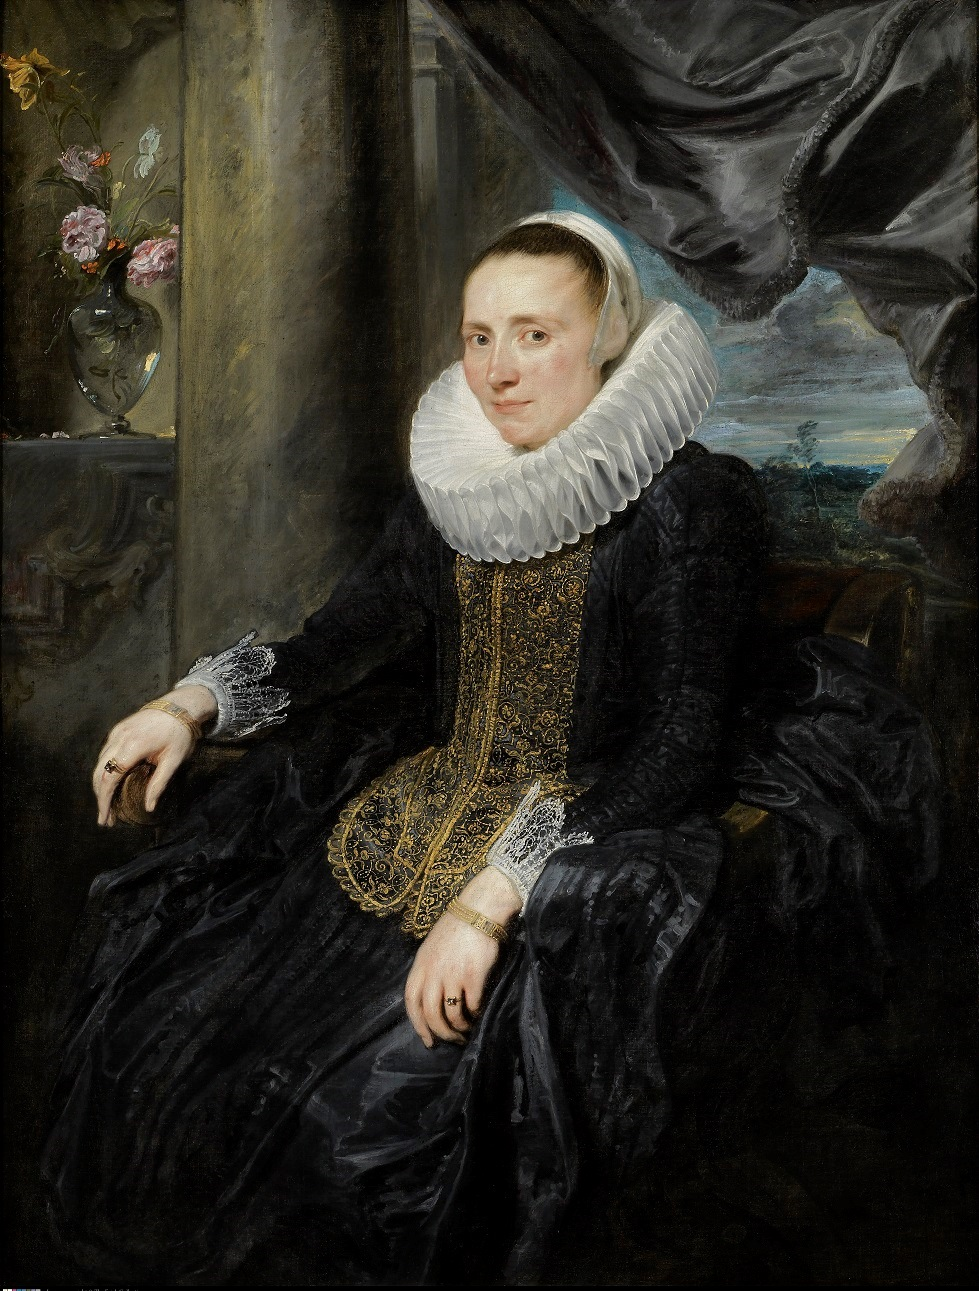 3. Anthony van Dyck (1599-1641), Margareta de Vos, c. 1620 The Frick Collection, New York Henry Clay Frick Bequest (1909.1.42) © The Frick Collection